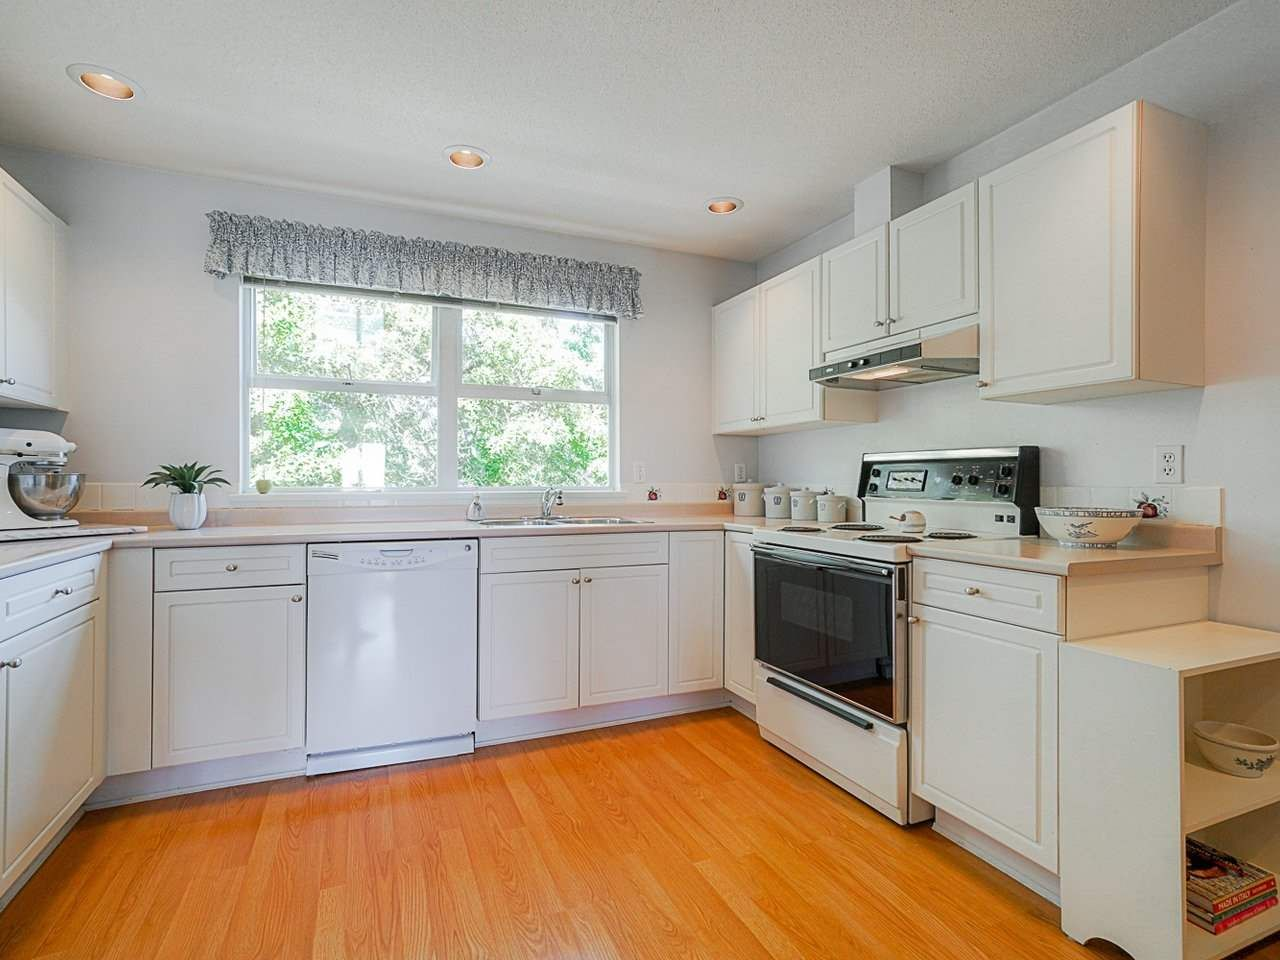 """Photo 28: Photos: 4 235 E KEITH Road in North Vancouver: Lower Lonsdale Townhouse for sale in """"Carriage Hill"""" : MLS®# R2471169"""